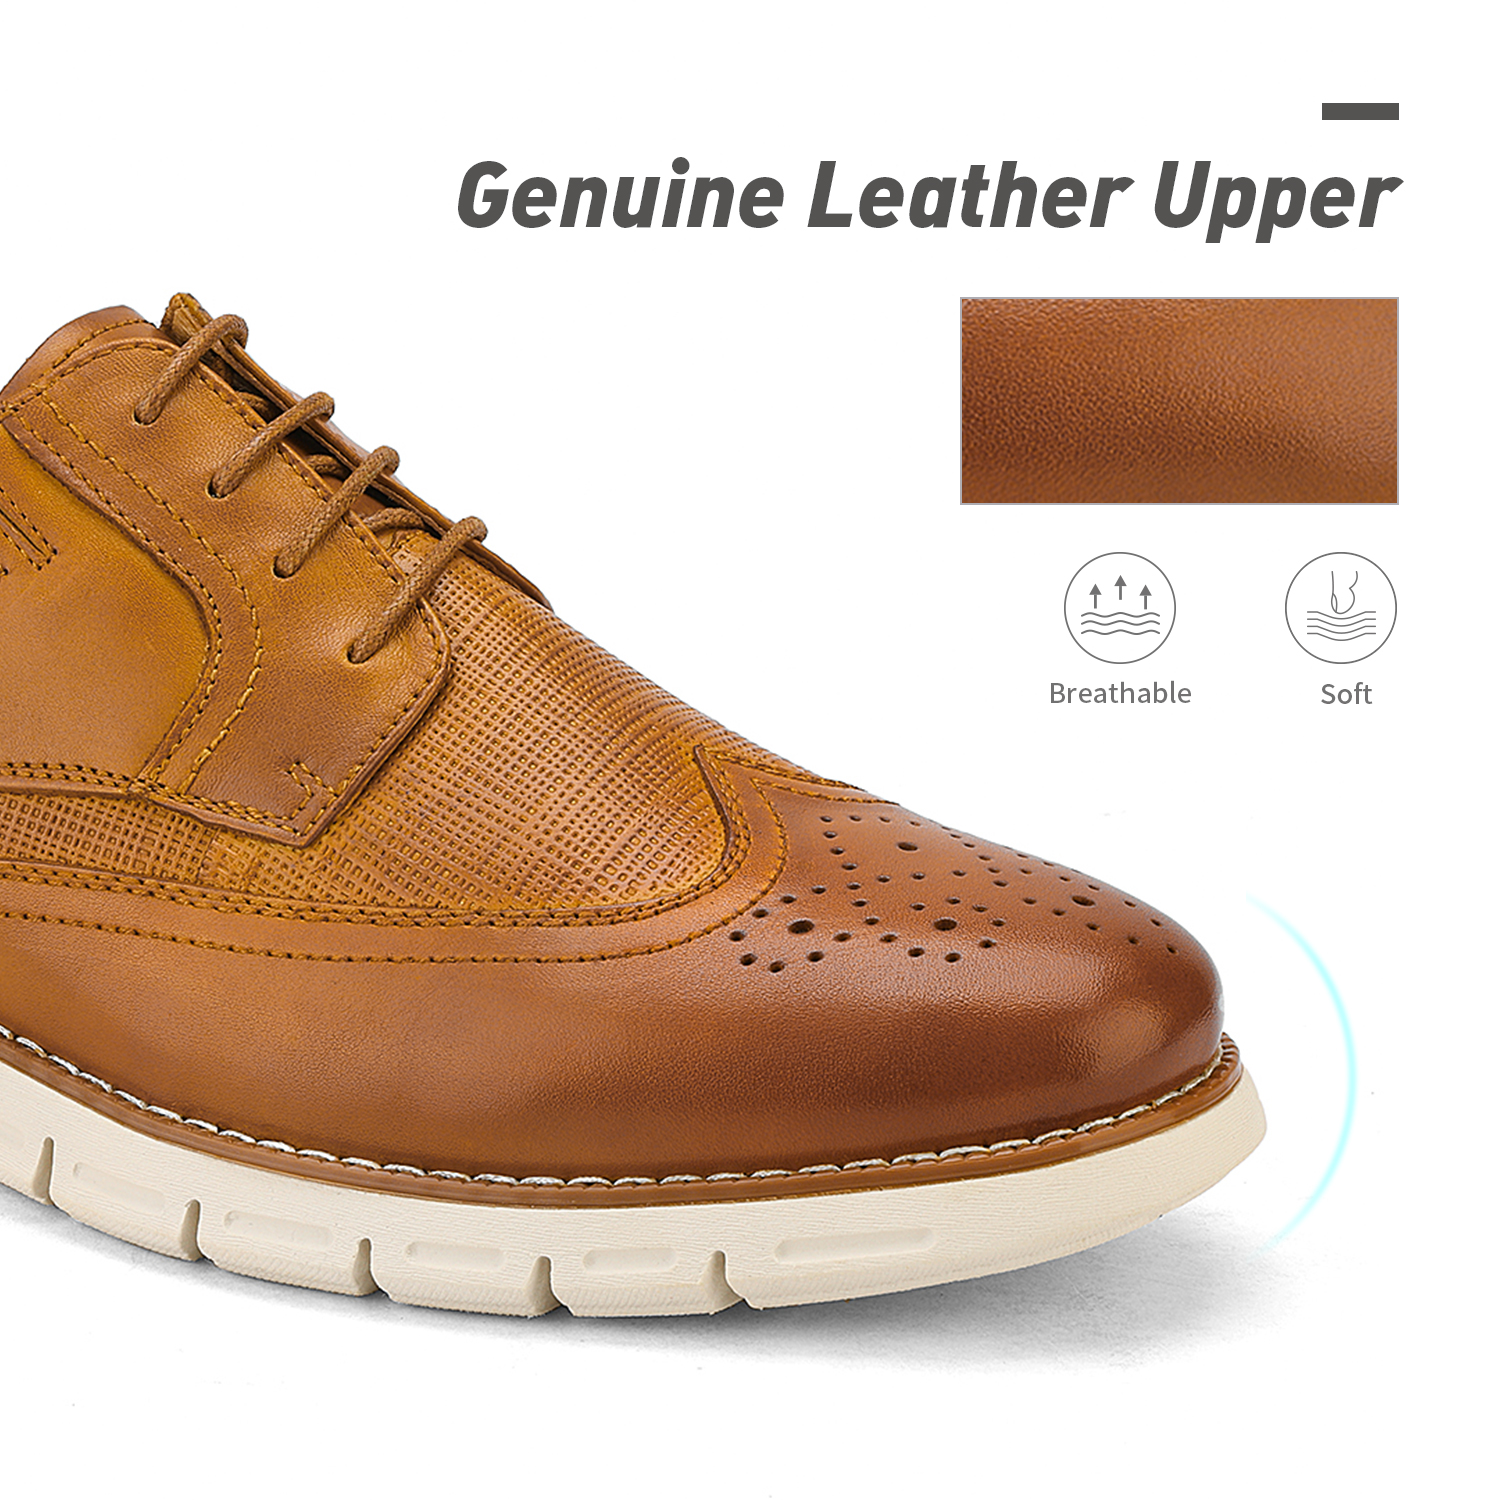 Men-s-Genuine-Leather-Casual-Formal-Sneakers-Lace-up-Business-Oxford-Dress-Shoes thumbnail 18